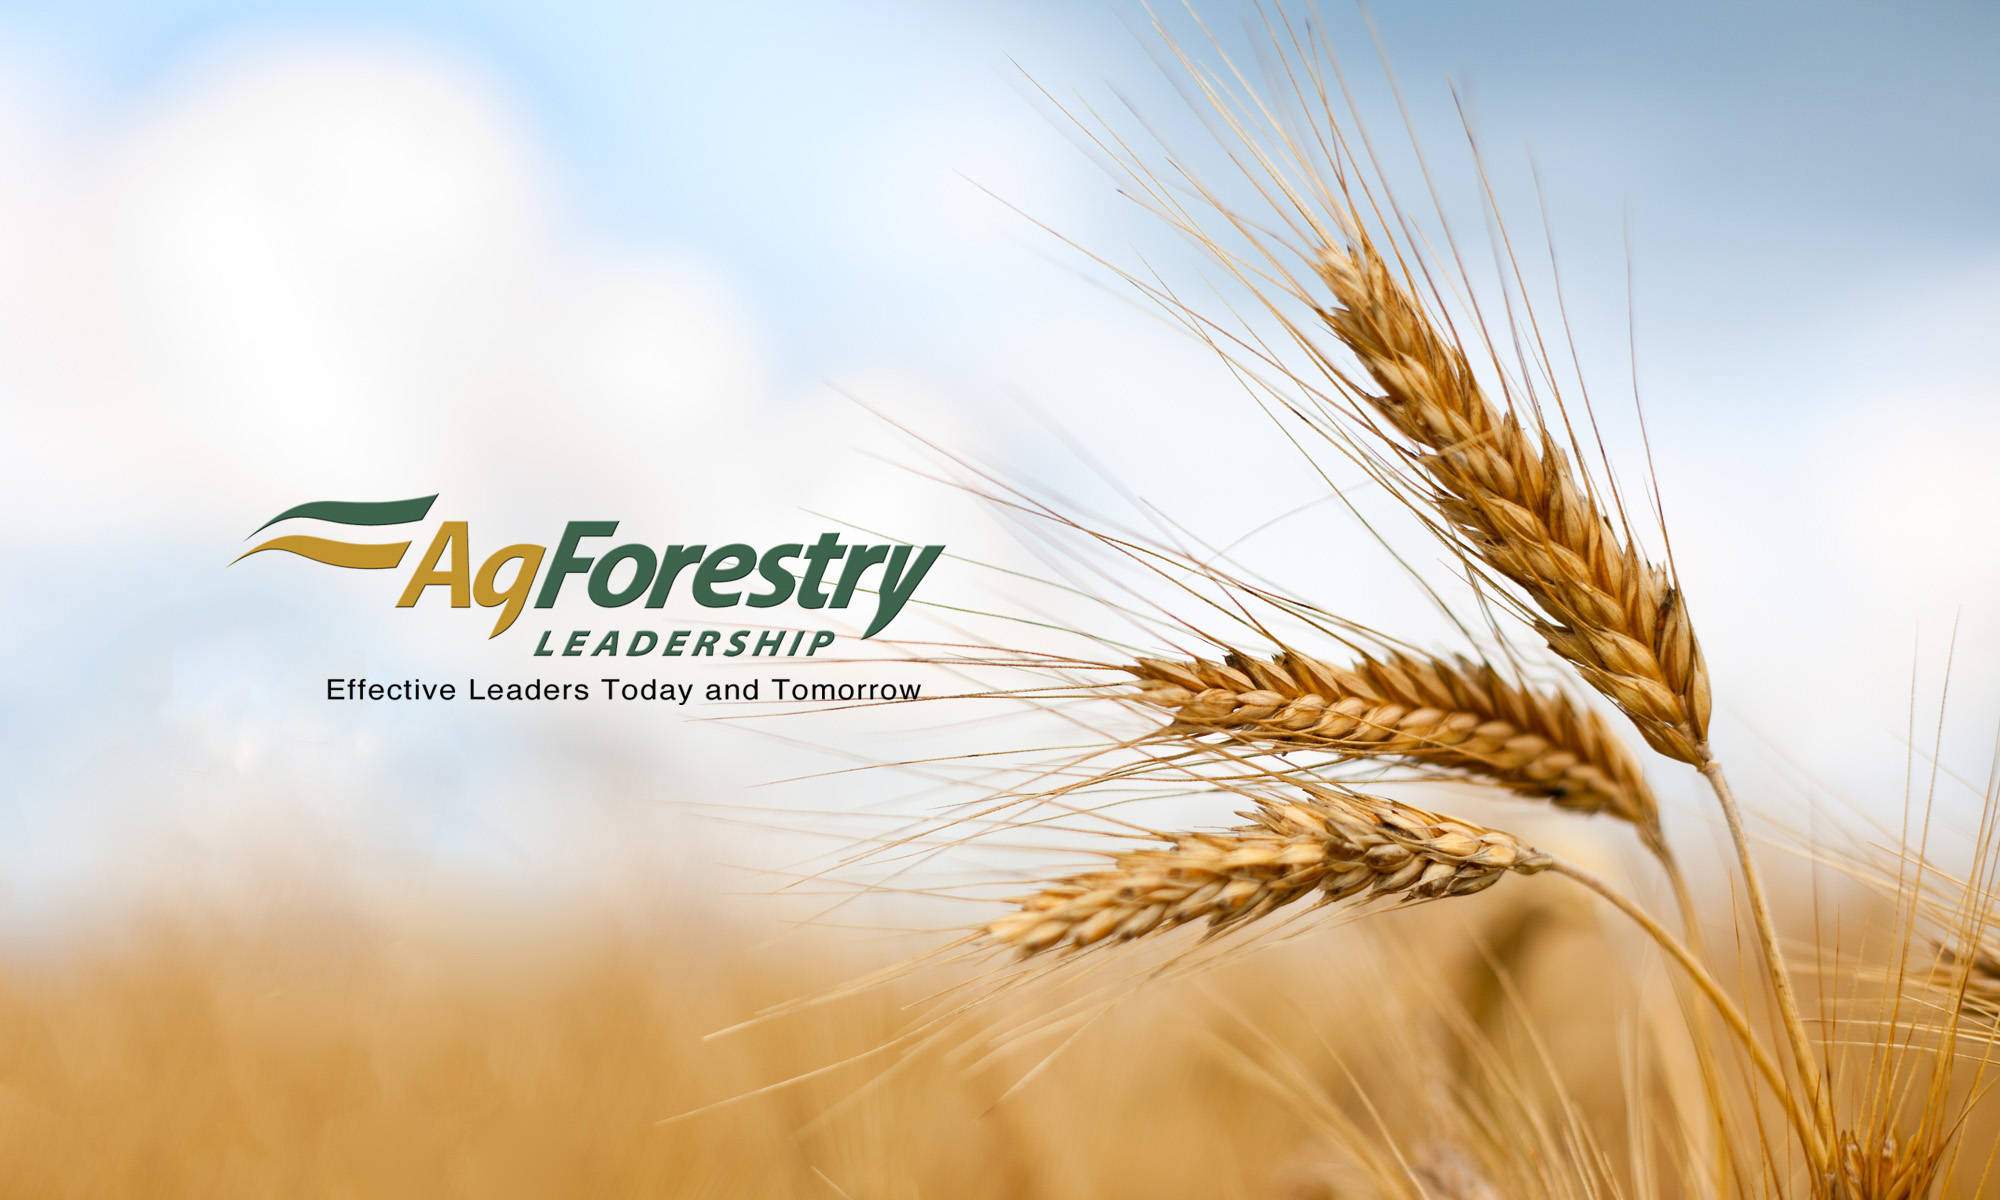 AgForestry